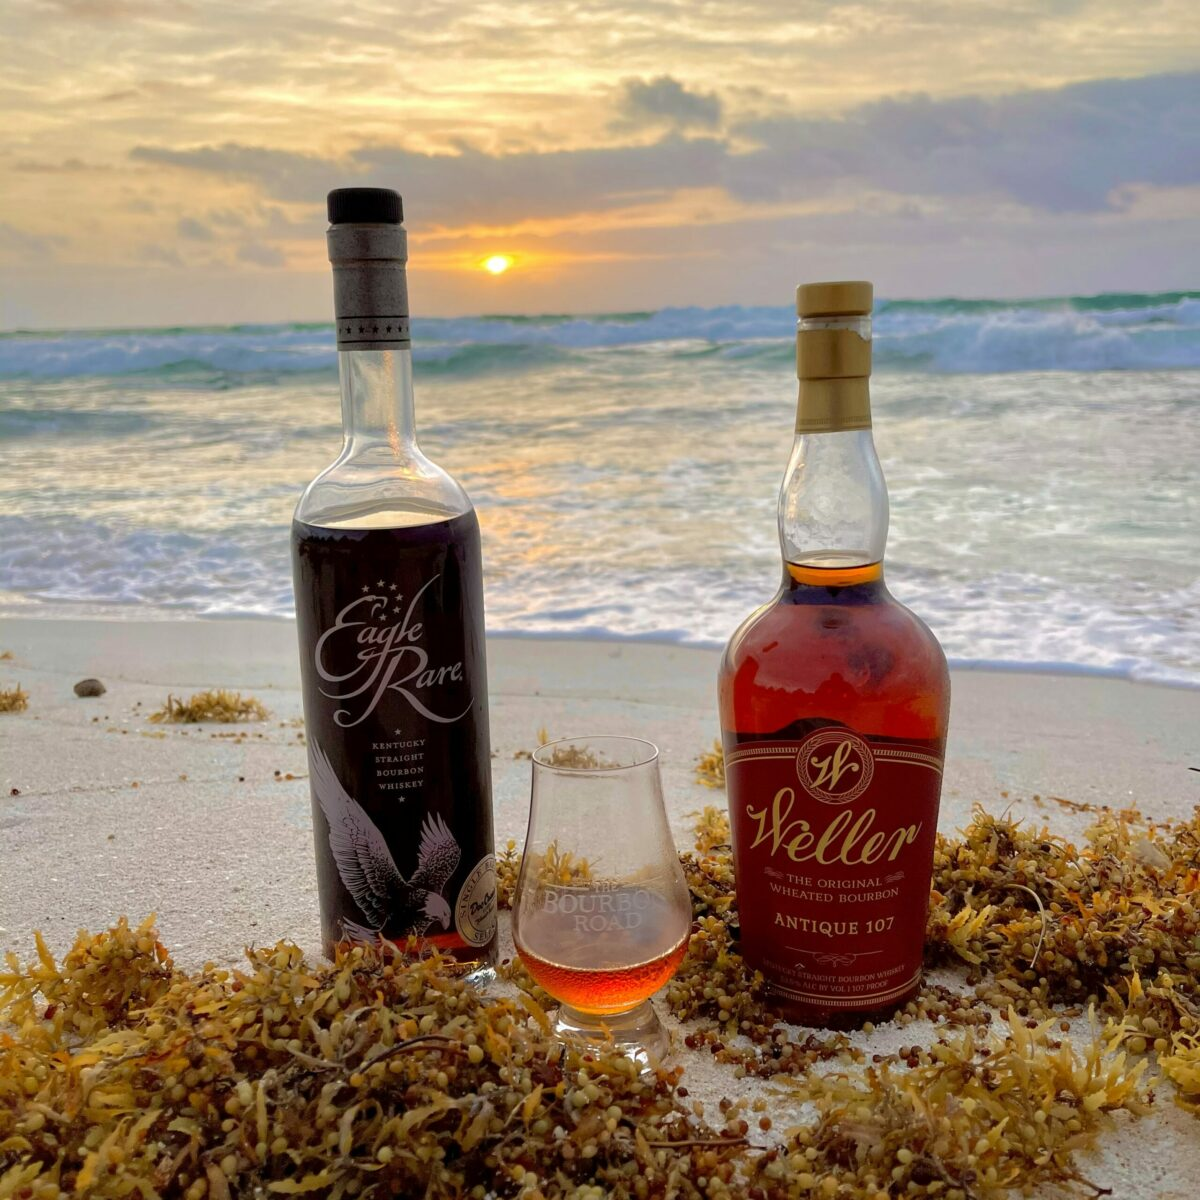 In Mexico with Weller 107 and Eagle Rare